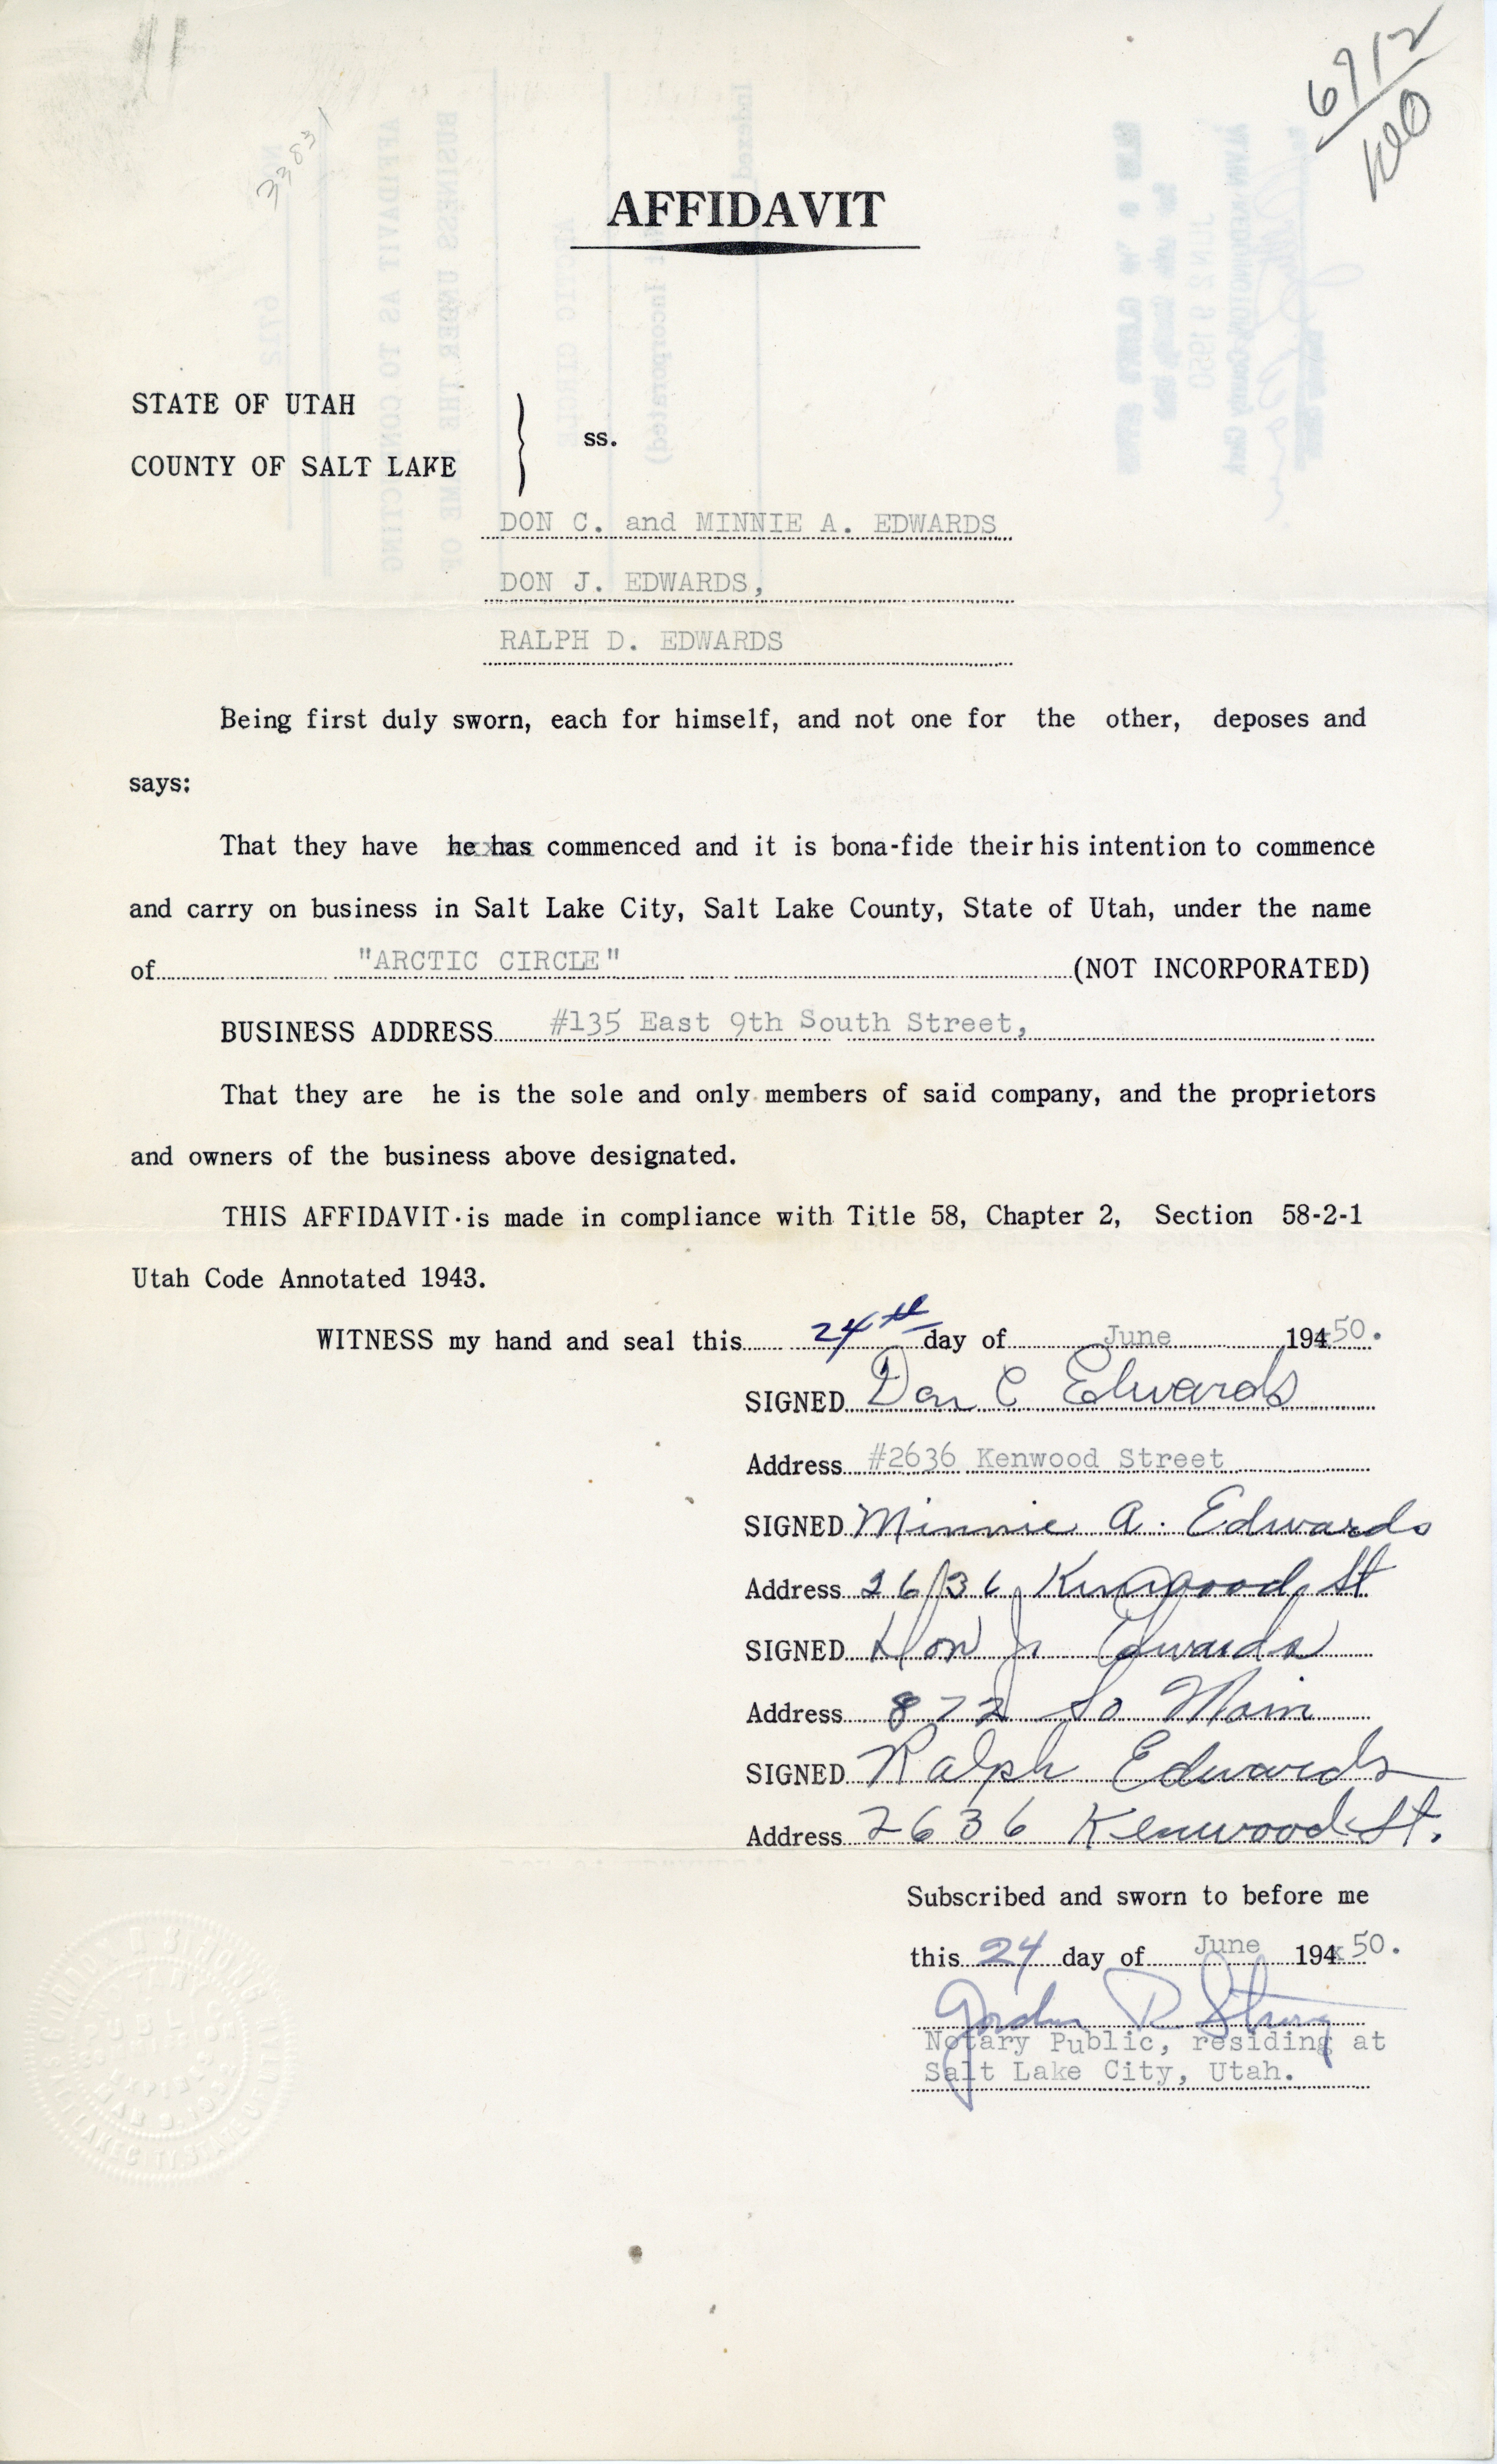 Salt lake county archives business affidavit for arctic circle 1950 salt lake county clerk business affidavits 1919 1962 series cl 034 original records at salt lake county reheart Image collections